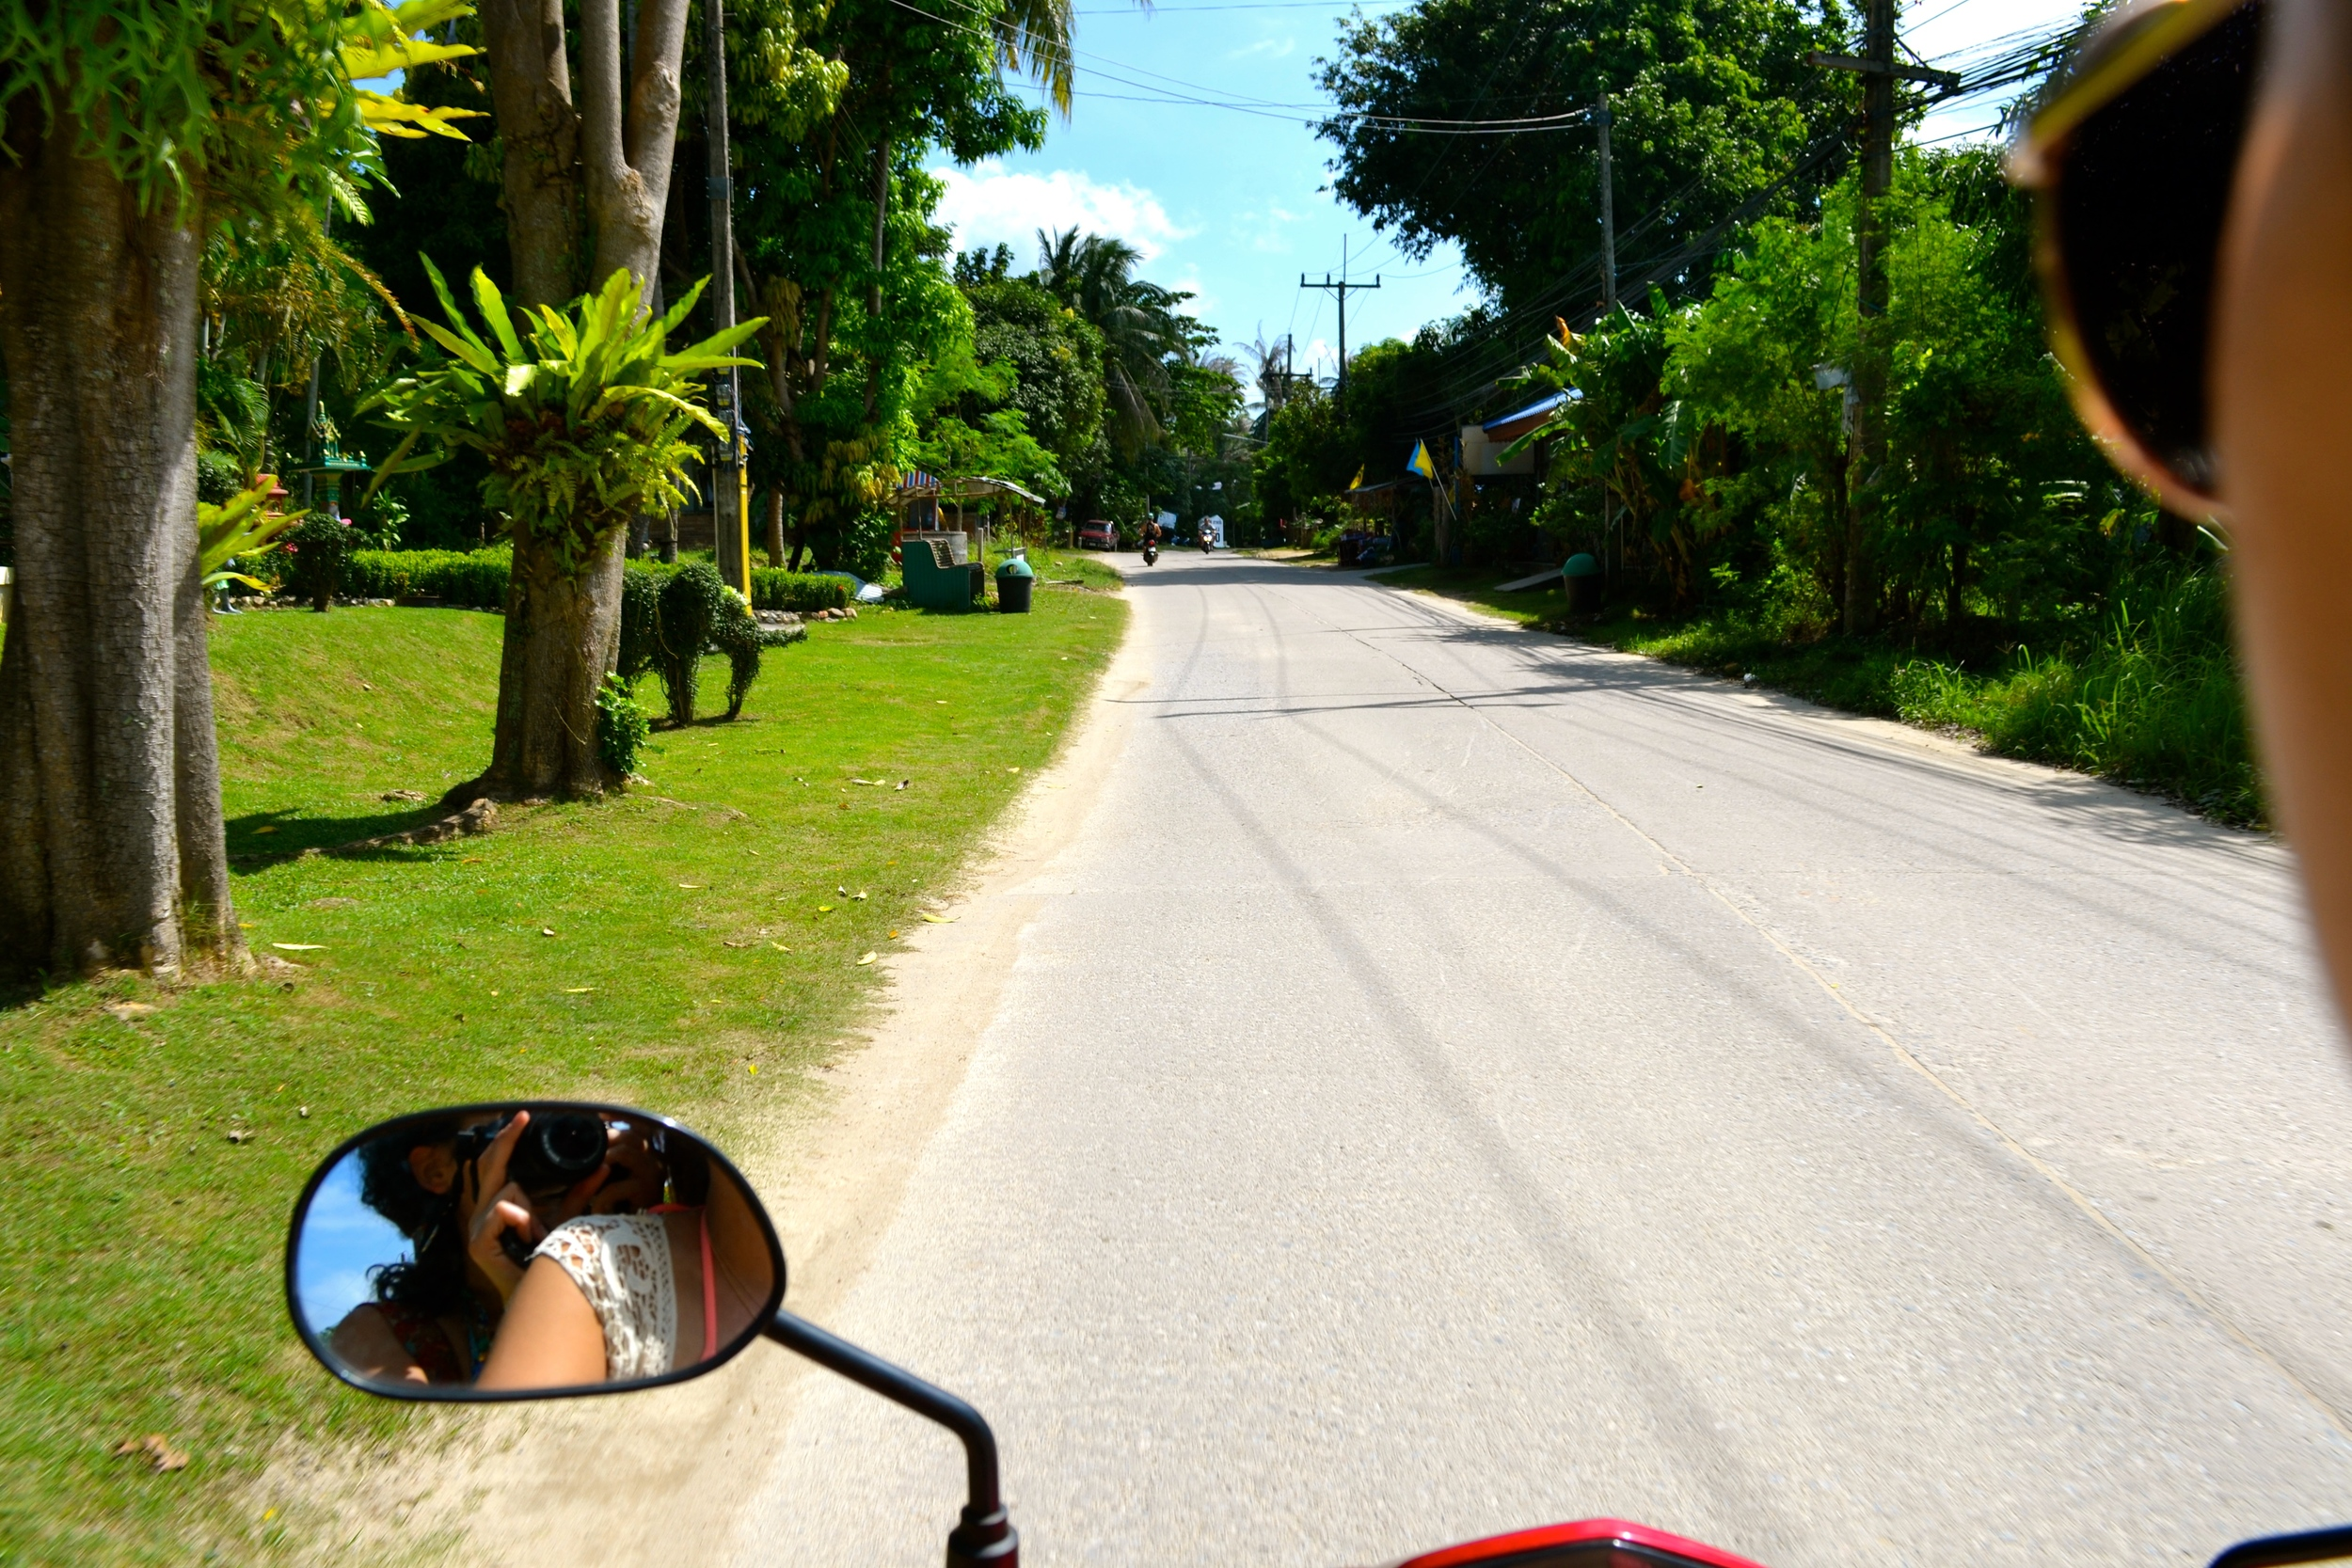 Riding (and photographing) through Koh Phangan island, Thailand